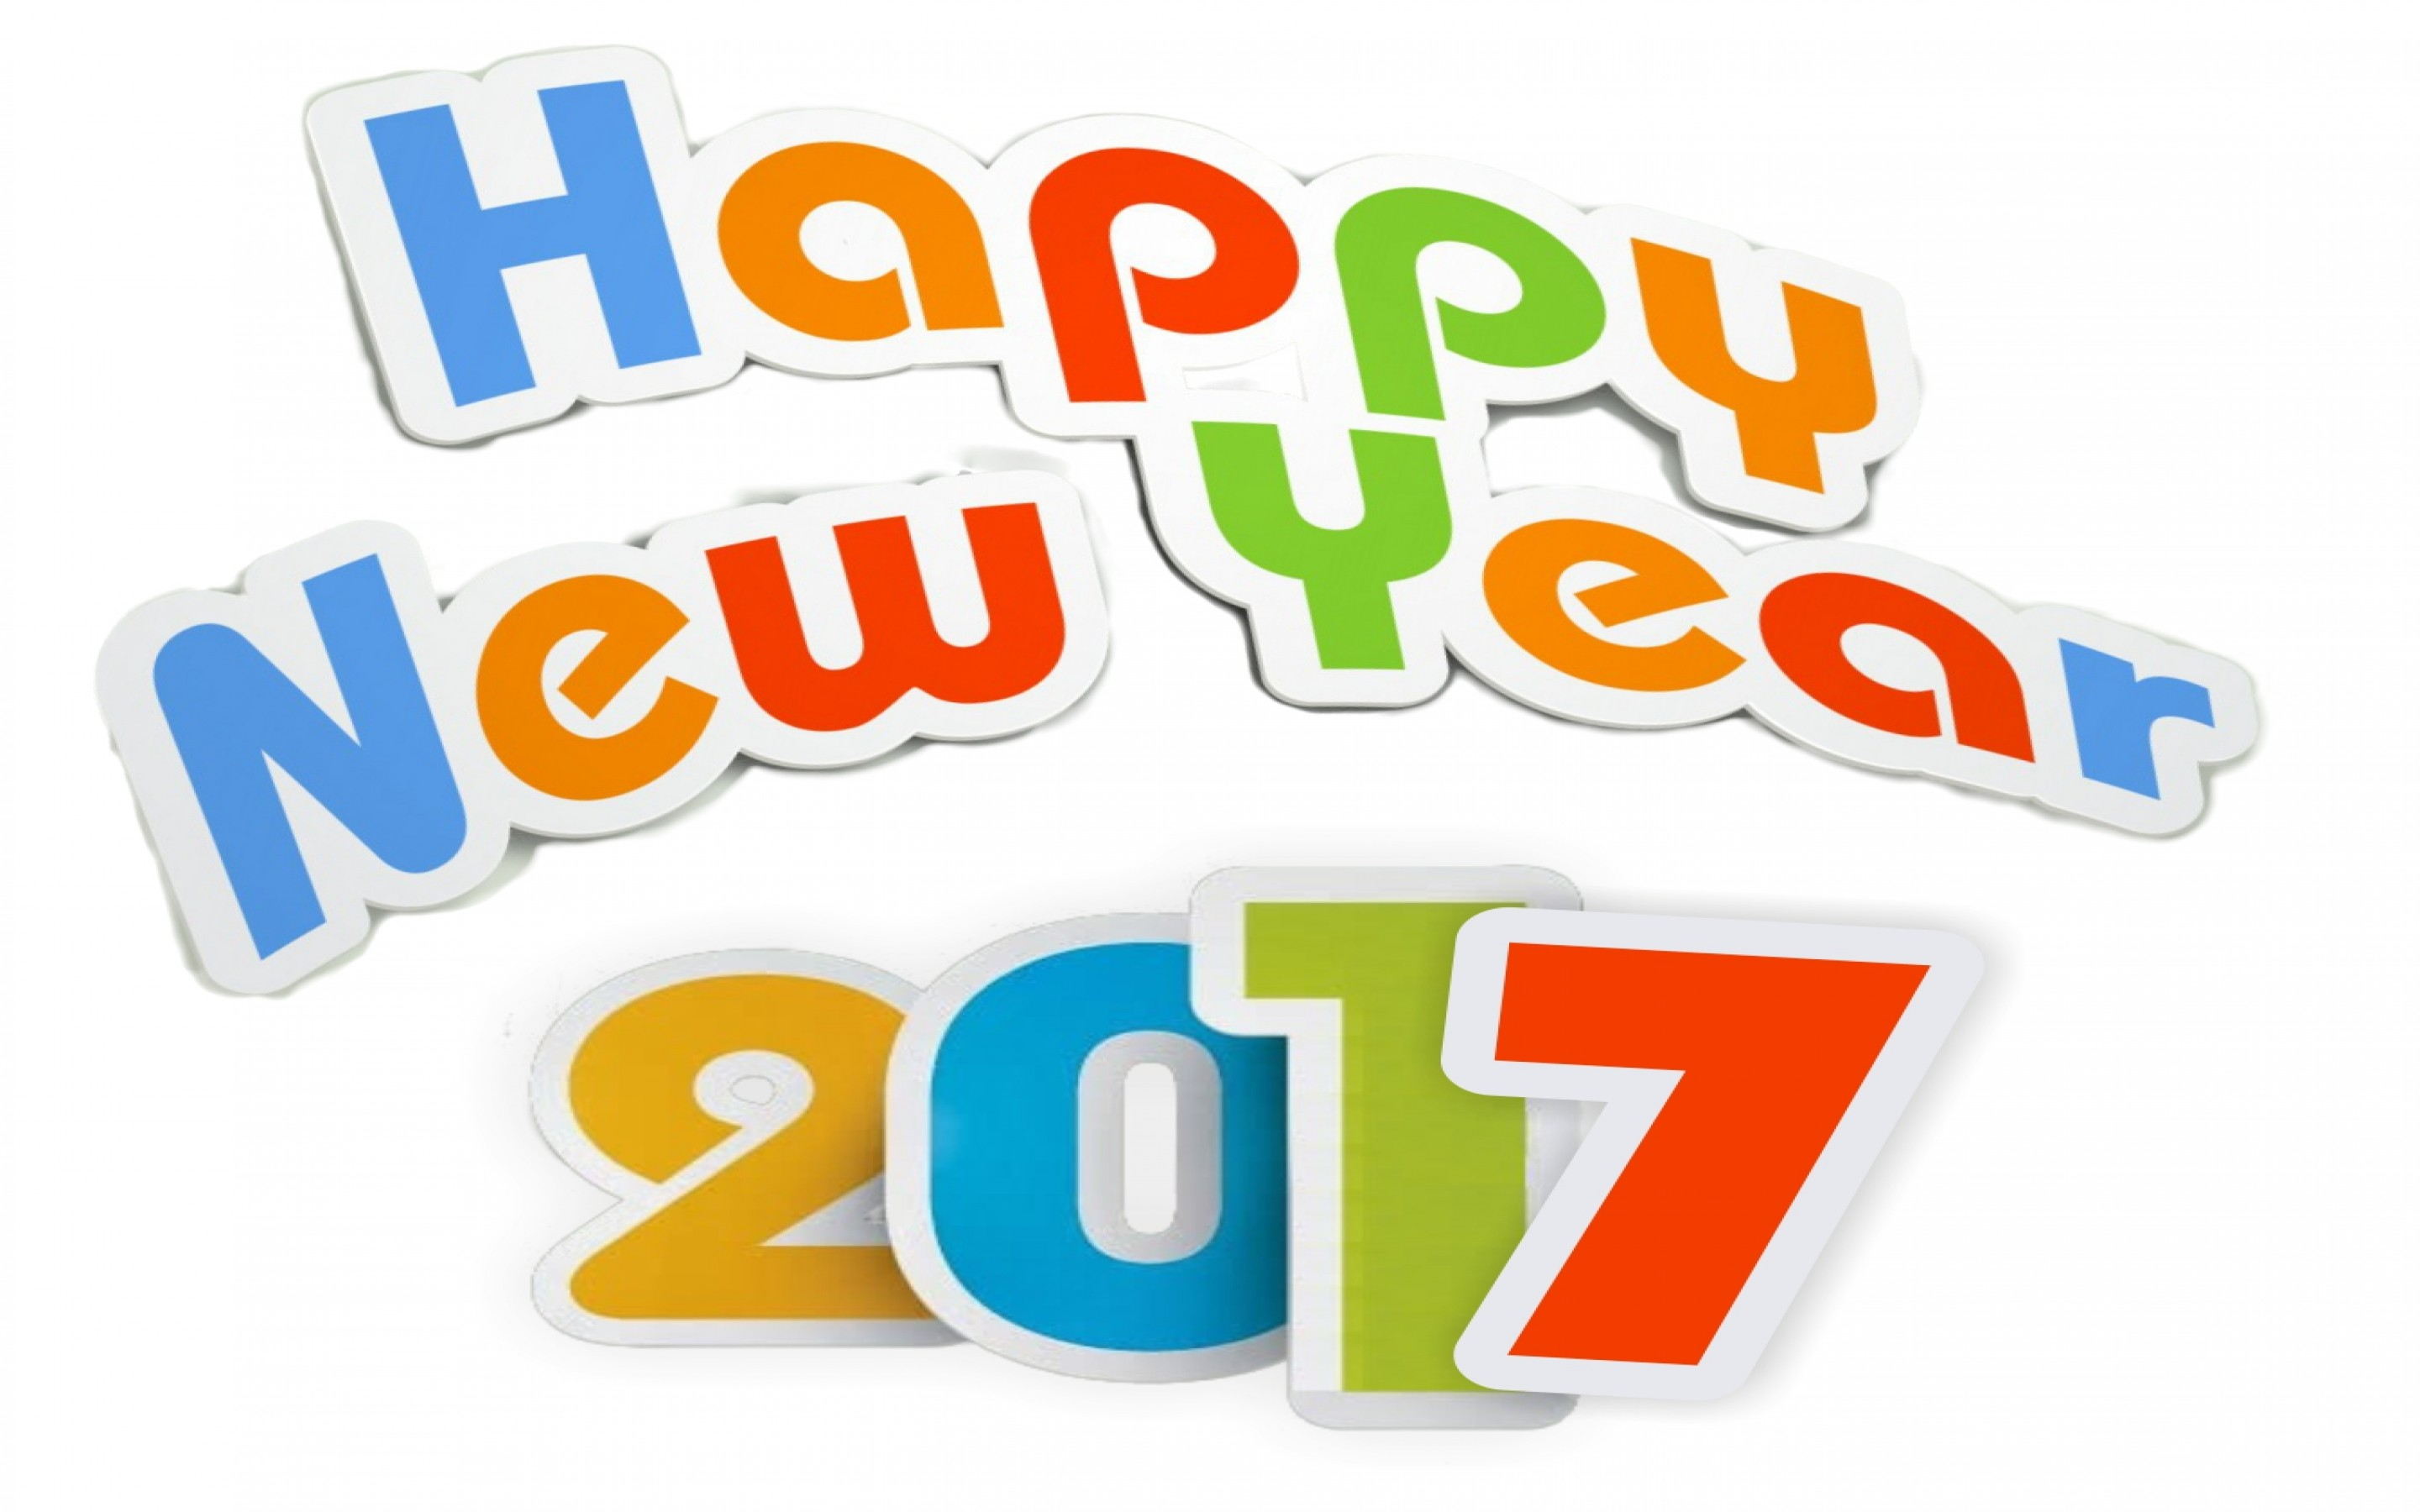 2880x1800 Happy New Year Png Transparent Happy New Year.png Images. Pluspng